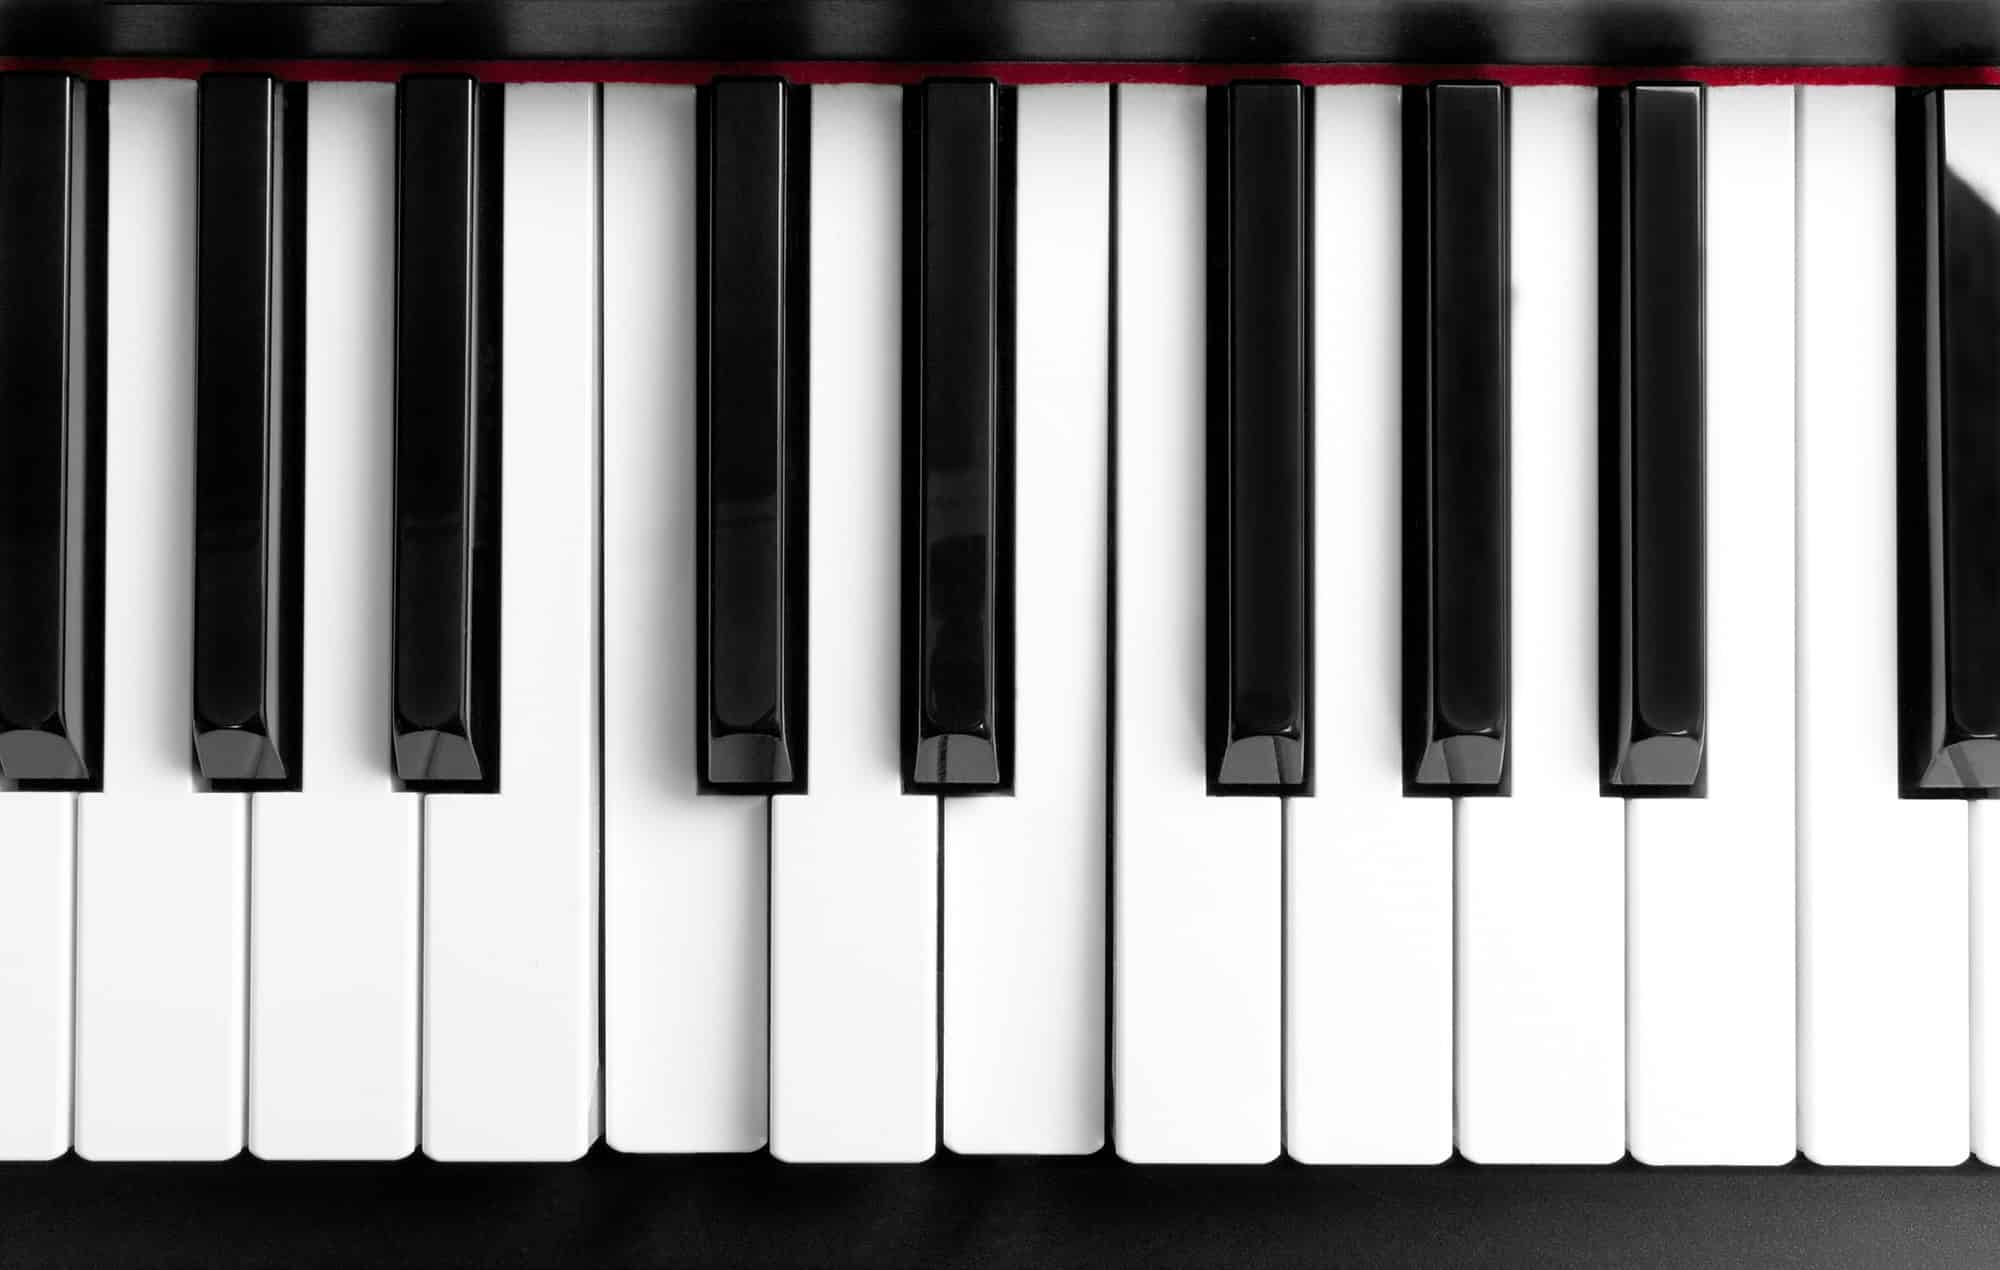 G# Piano Chord How To Learn The Basics Of Piano Chords Beginners Guide